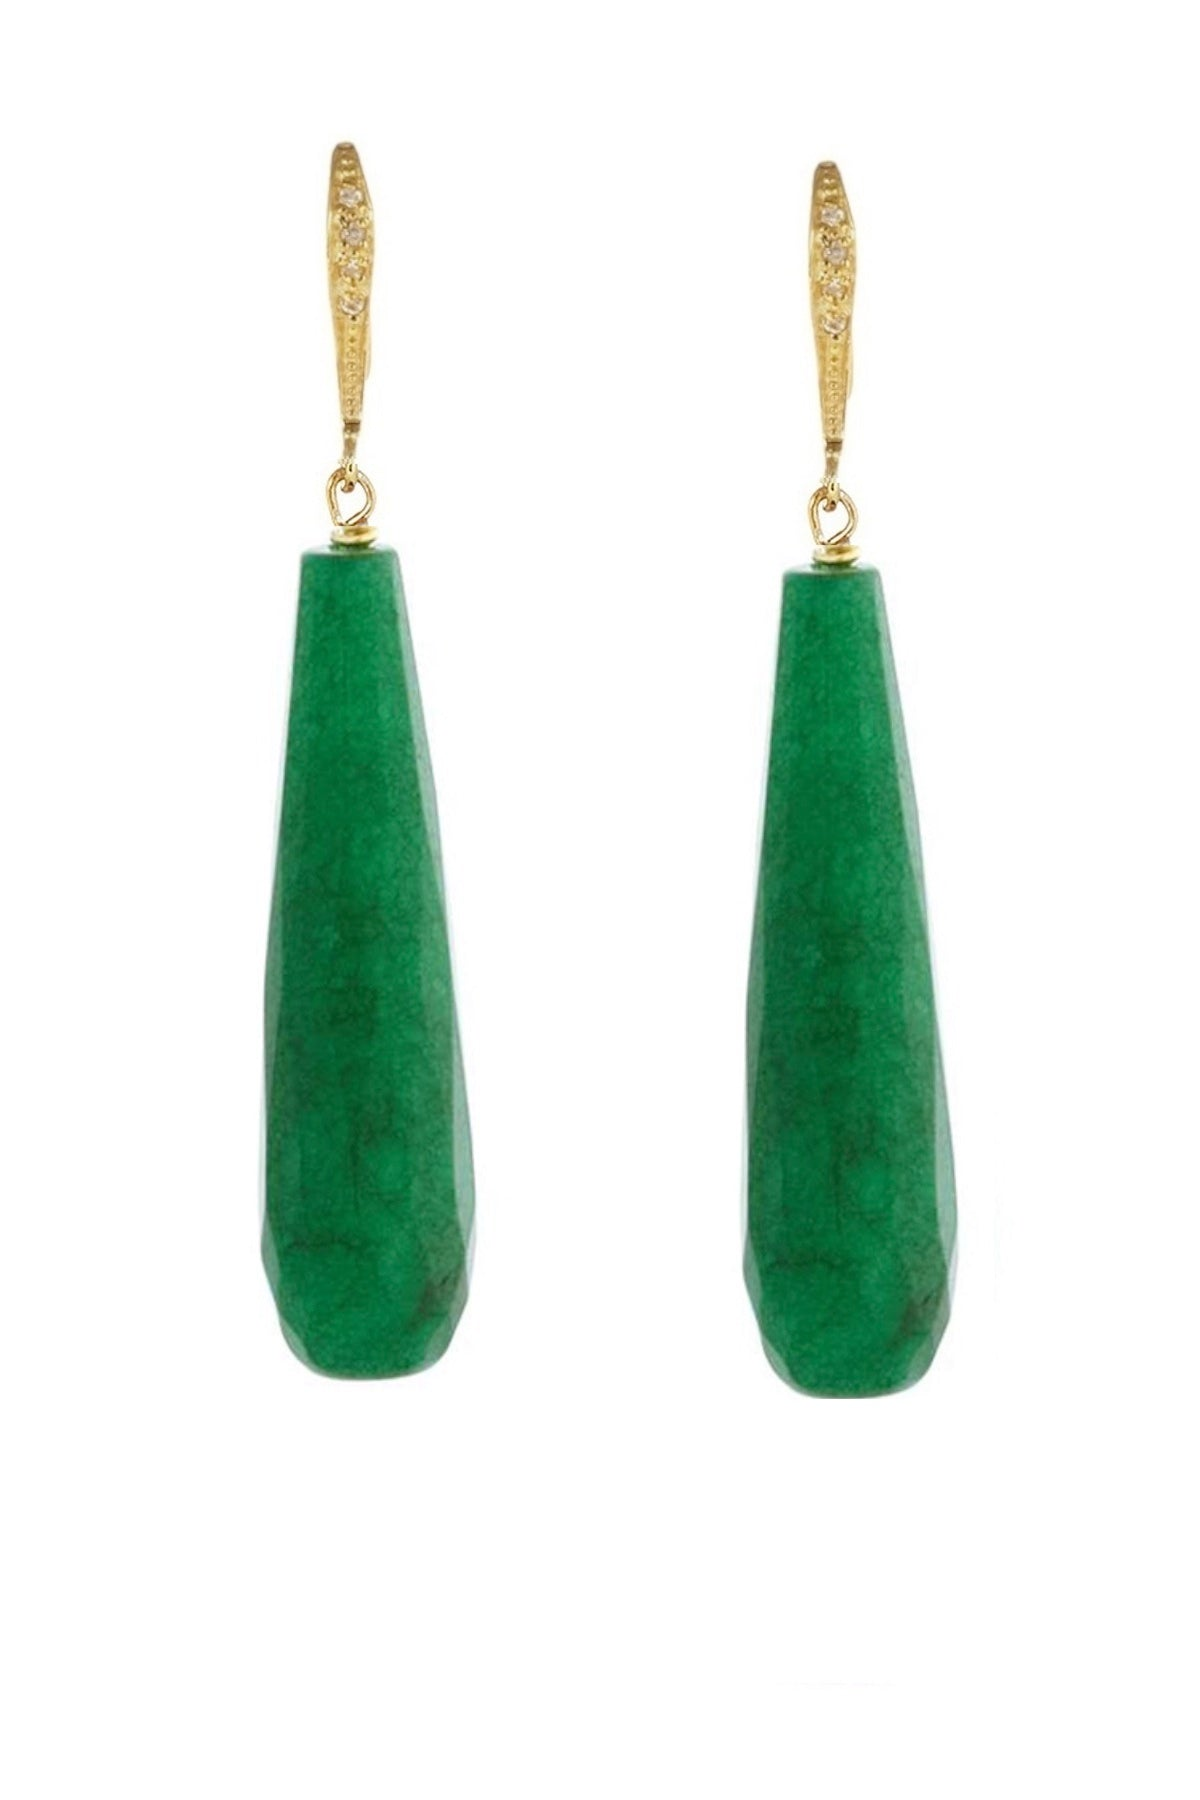 18k Gold Plated Cz & Green Tear Drop Earrings